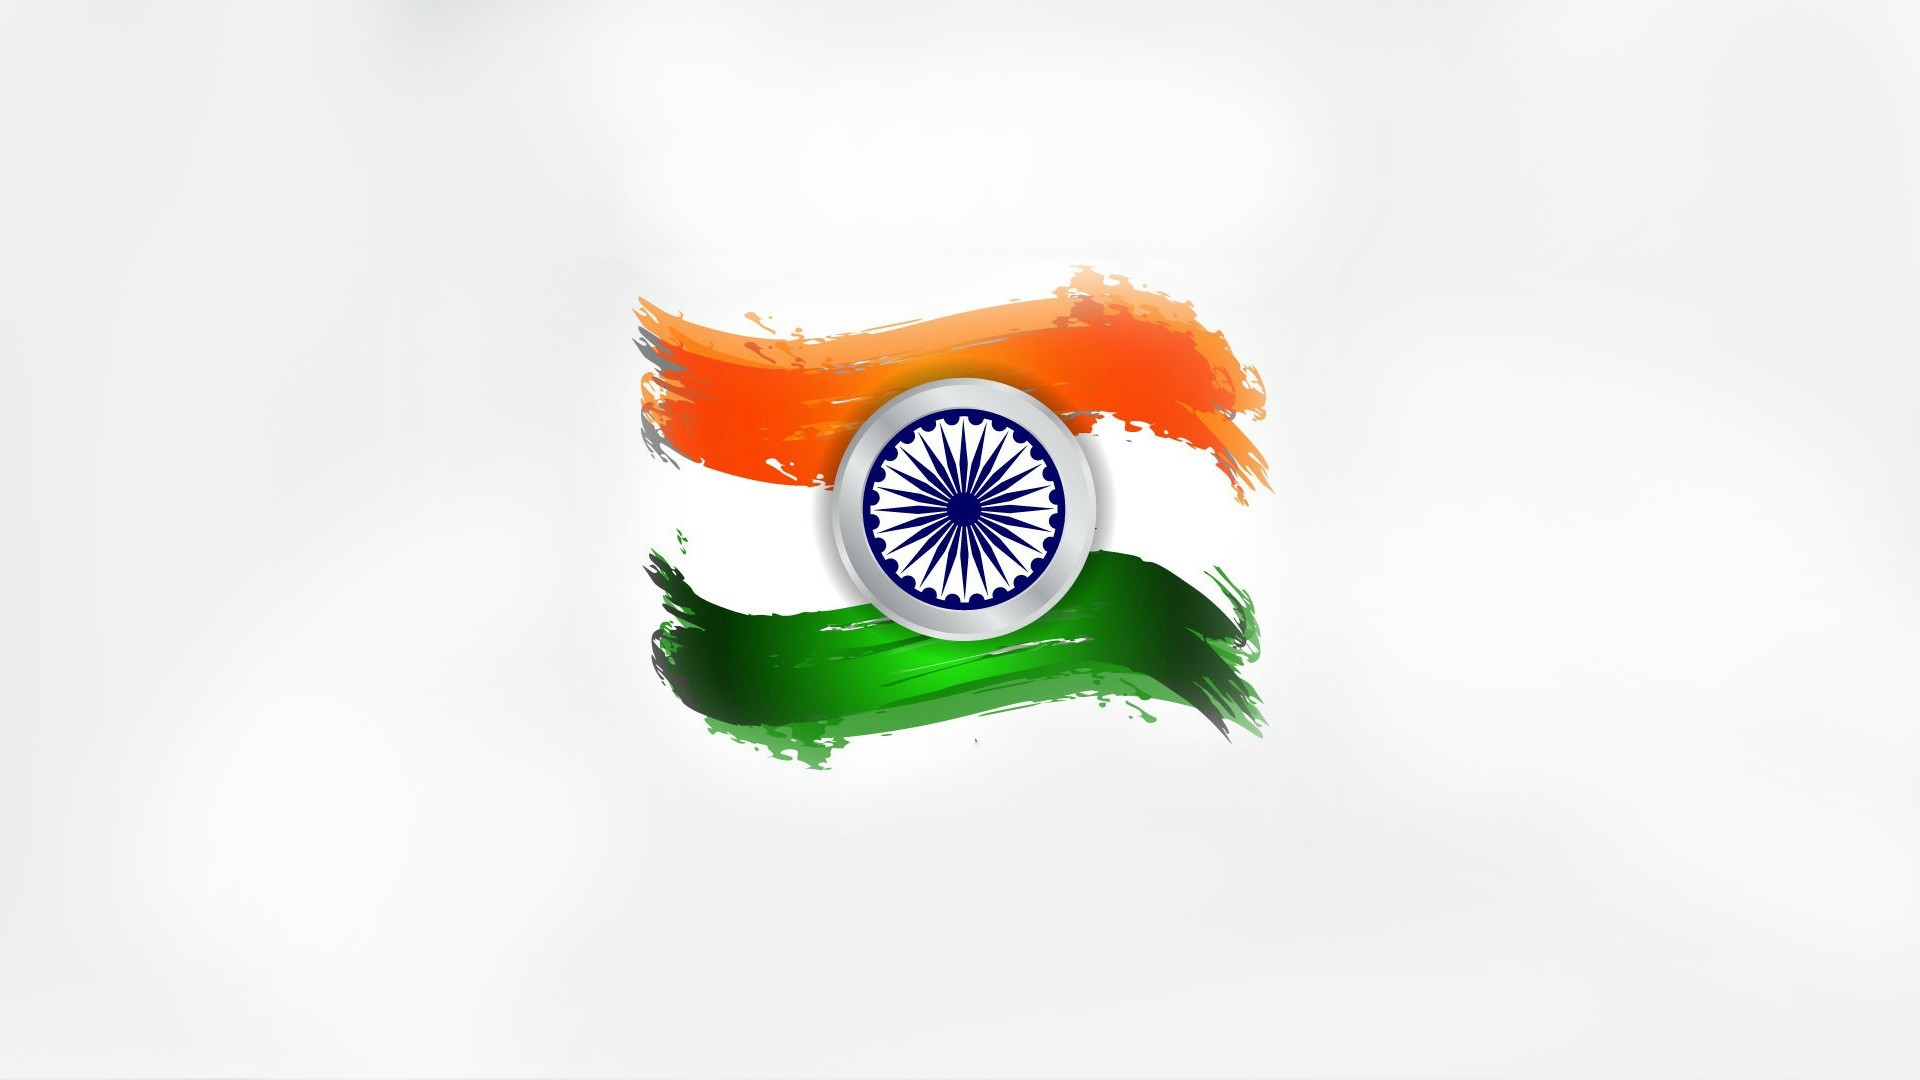 live updates] indian flag images, hd wallpapers, pics & photos